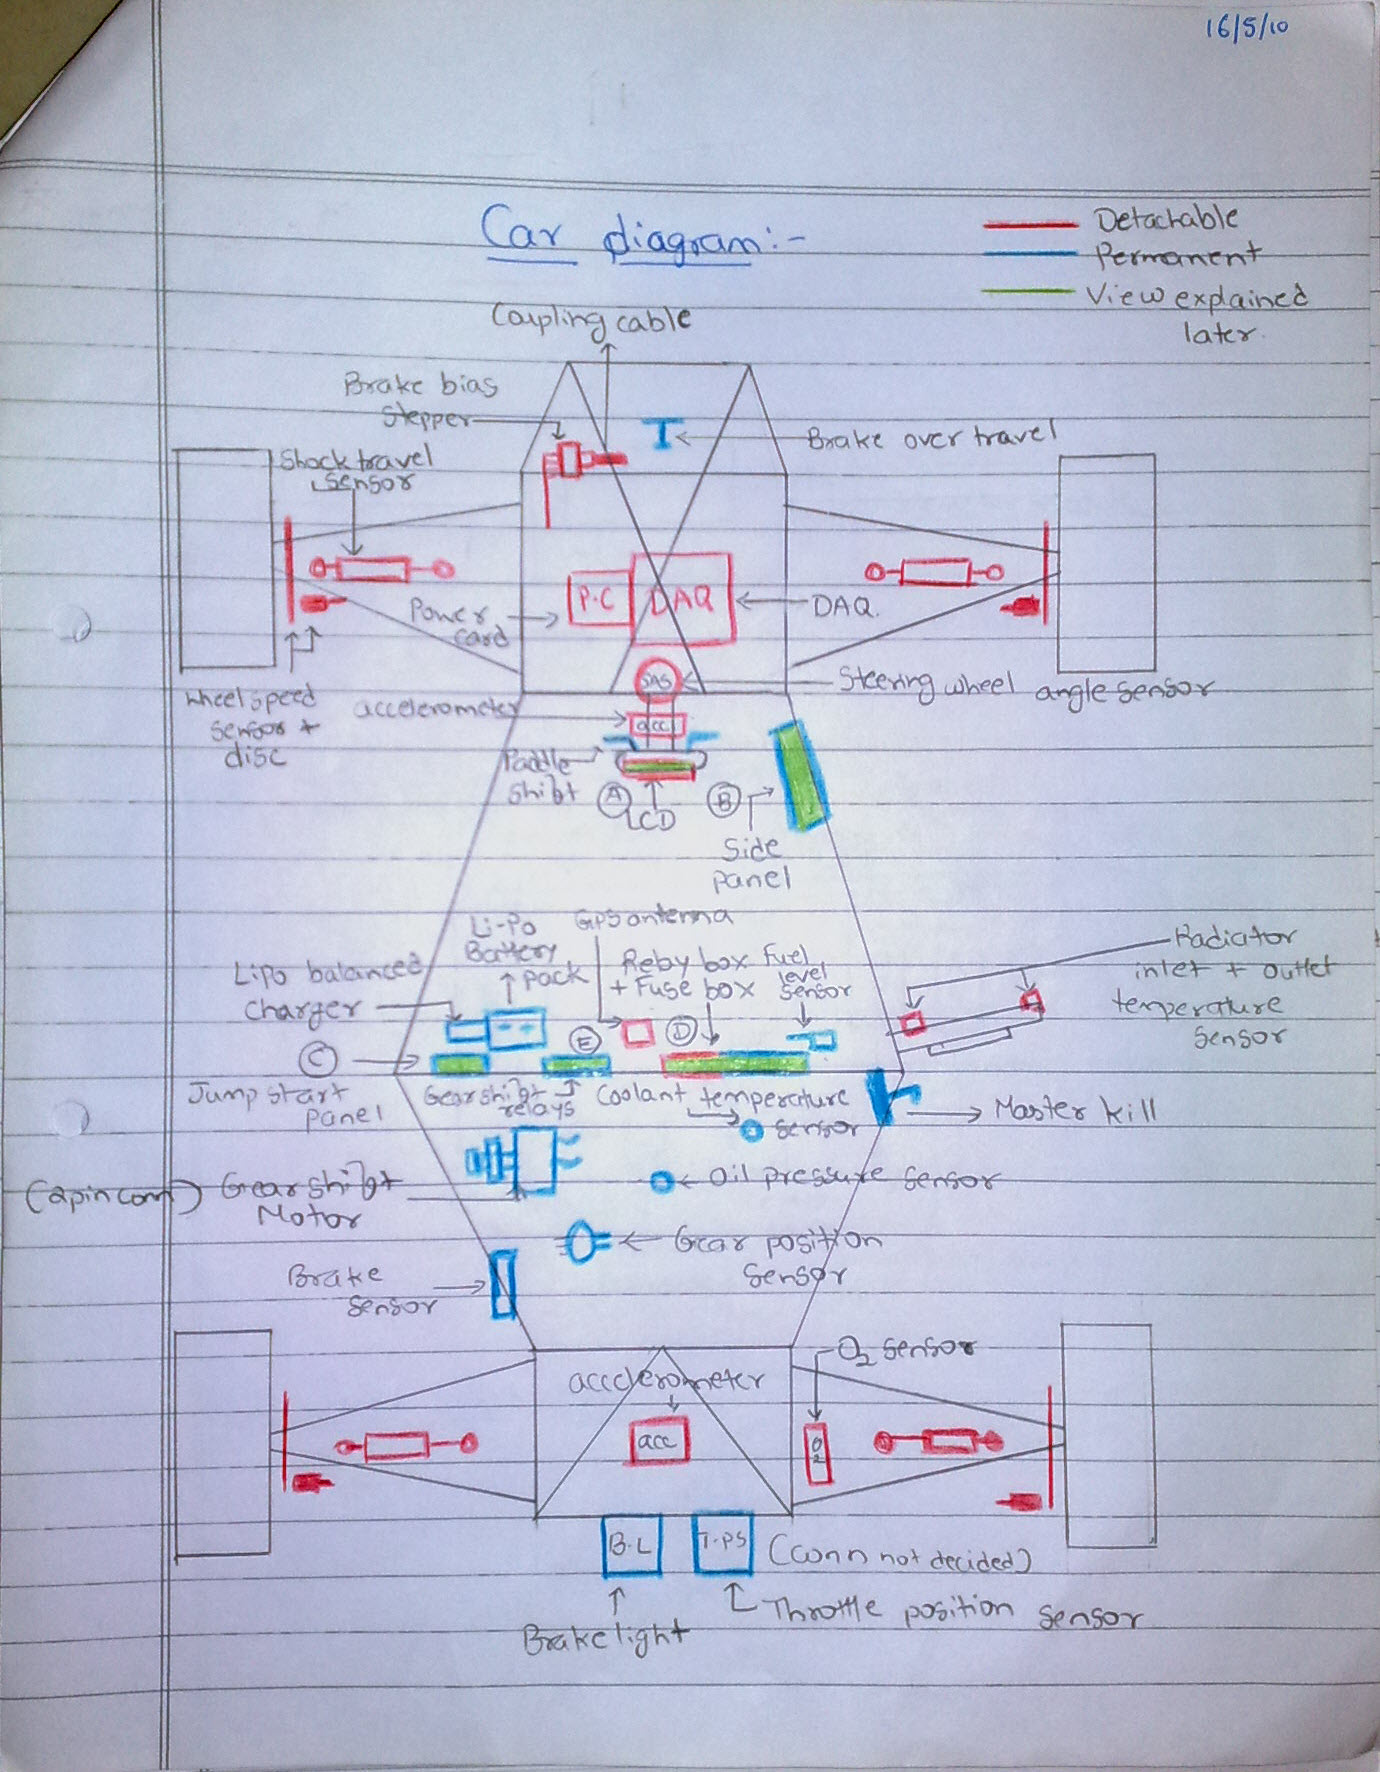 Wiring diagrams for a fsae race car ori2010 lets talk gyan ori2010 asfbconference2016 Images